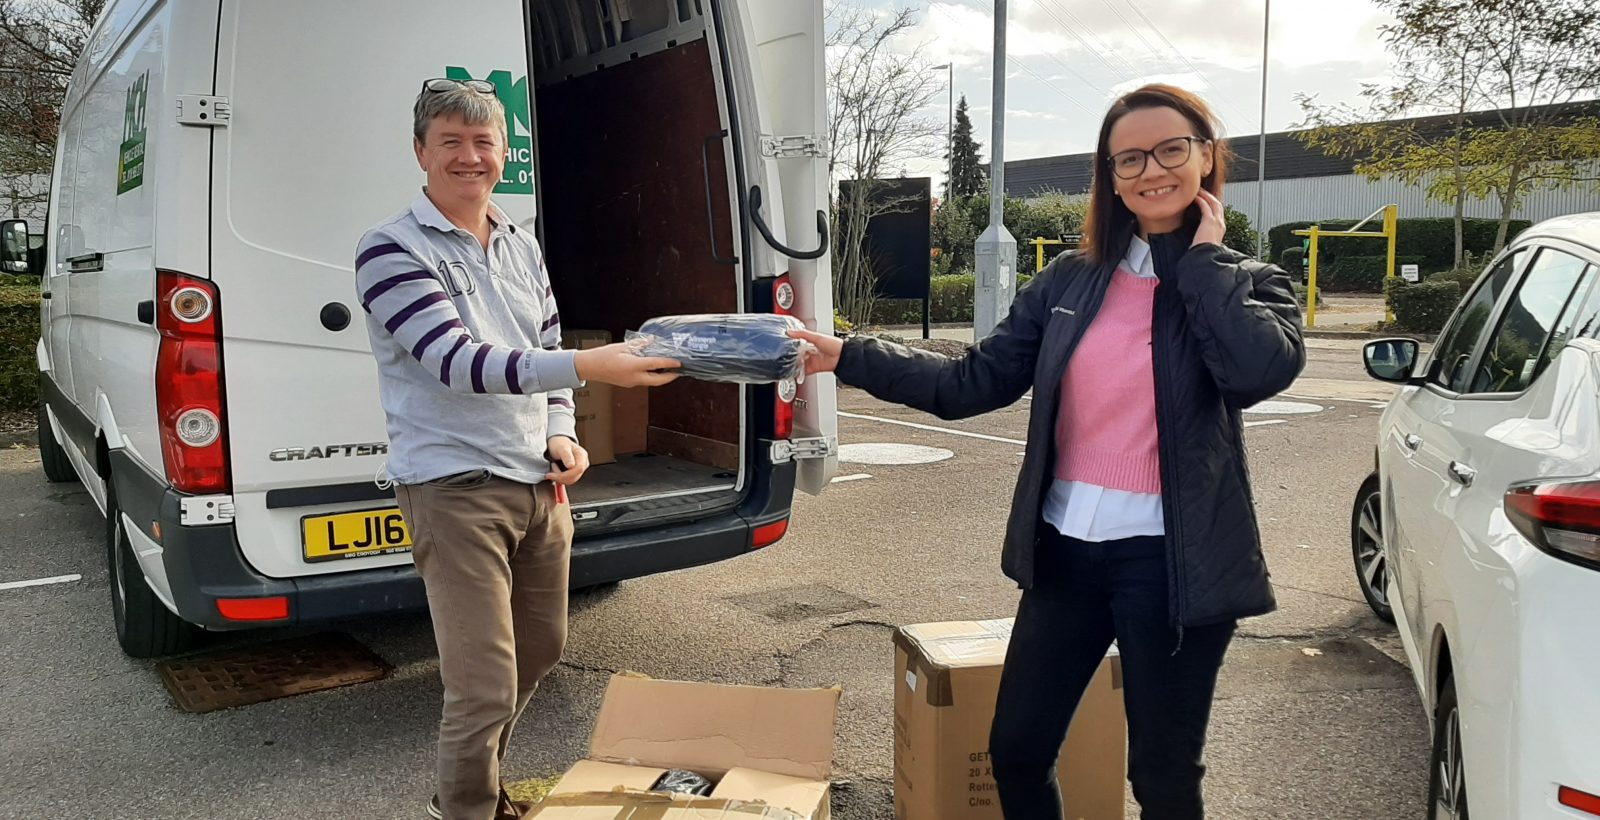 Winnersh Triangle donates over 150 blankets to local charity